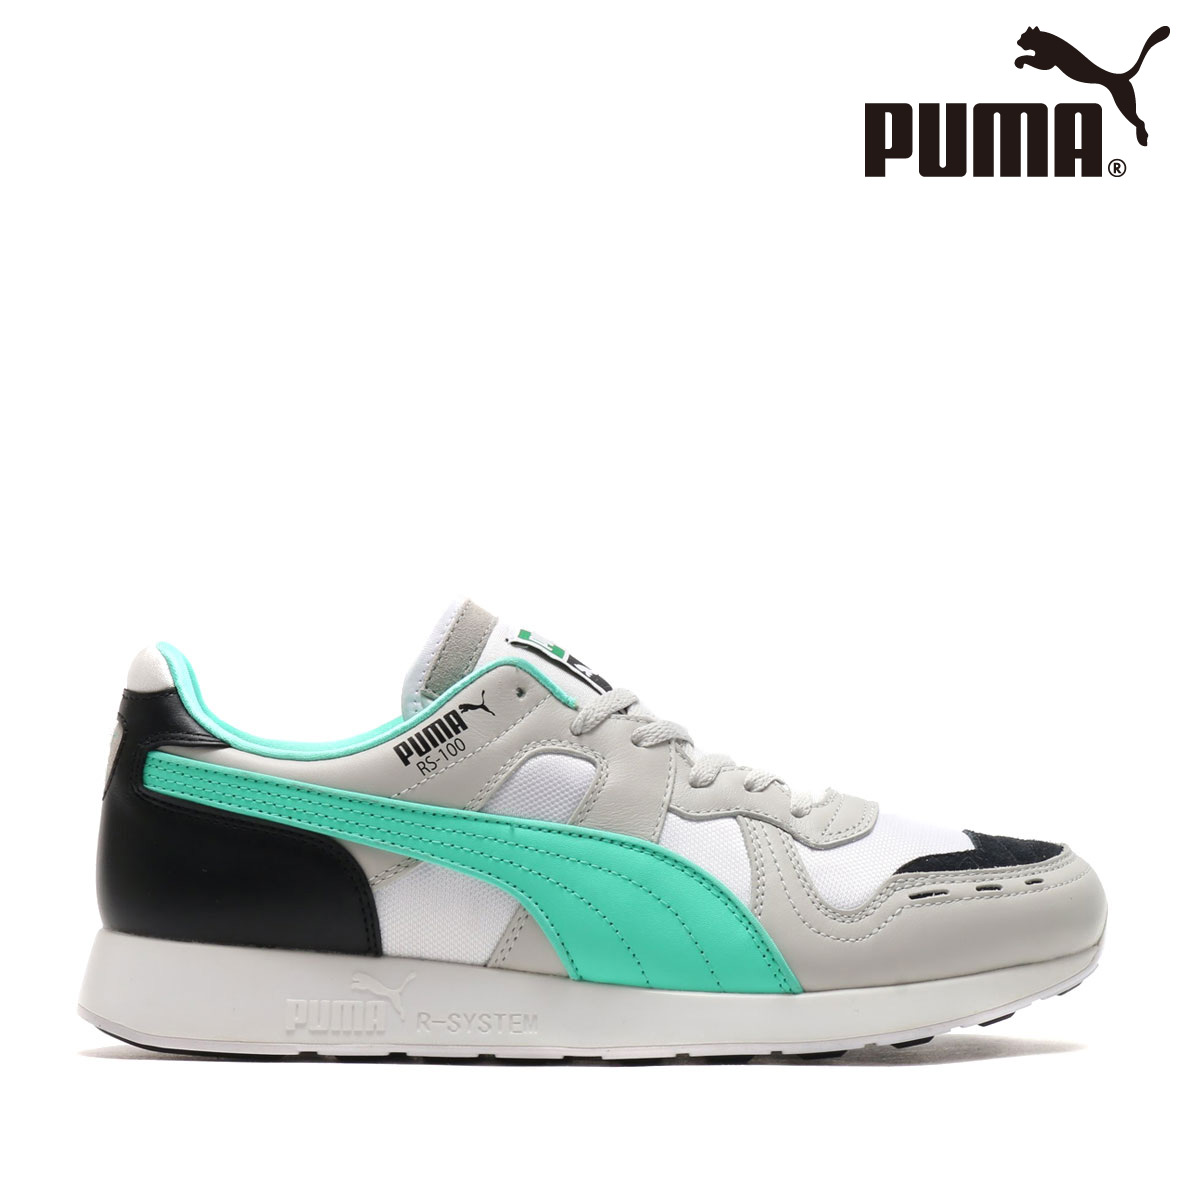 PUMA RS-100 RE-INVENTION(Gray Violet/Biscay Green/Puma White)(プーマ RS-100 リ-インベンション)【メンズ】【スニーカー】【18SP-I】